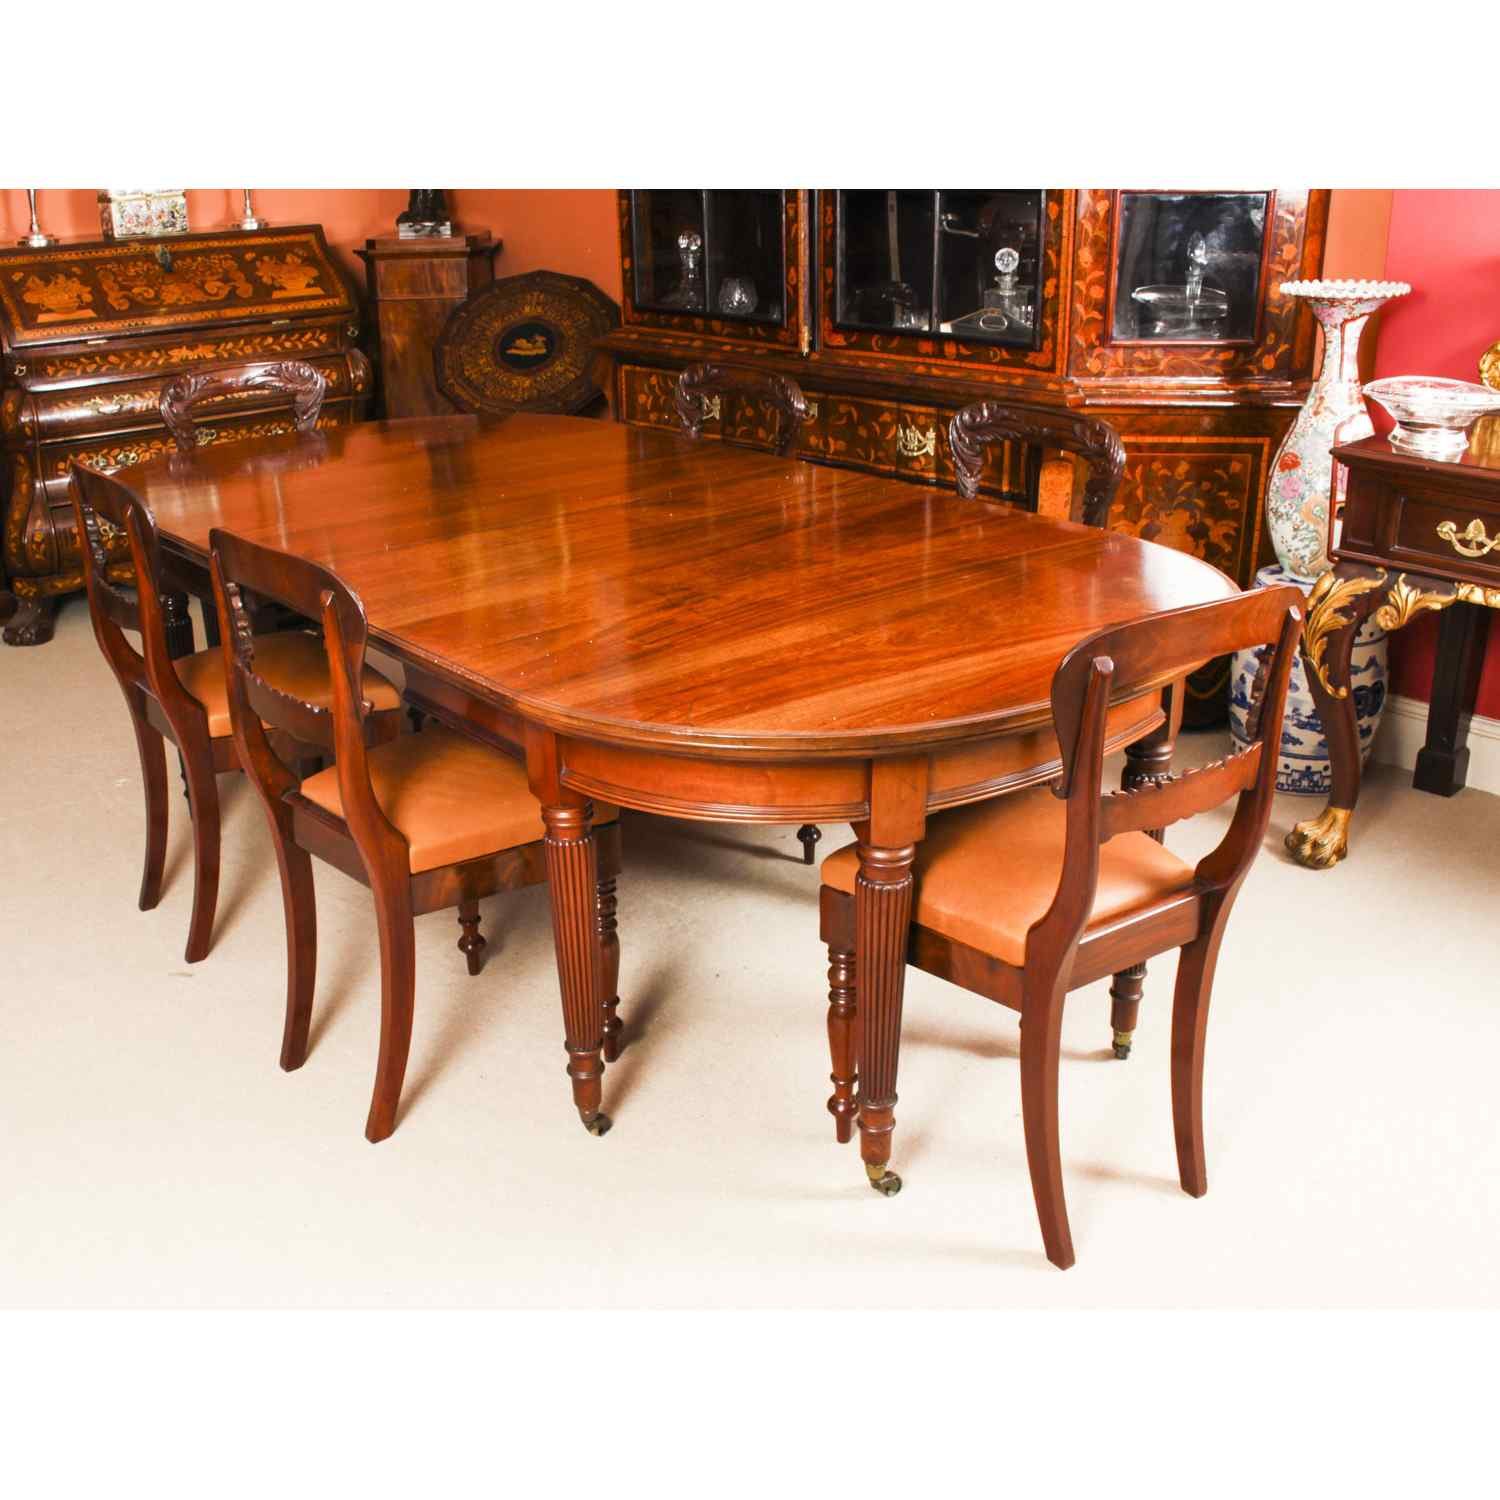 Antique Victorian Extending Dining Table & 9 chairs 9th C